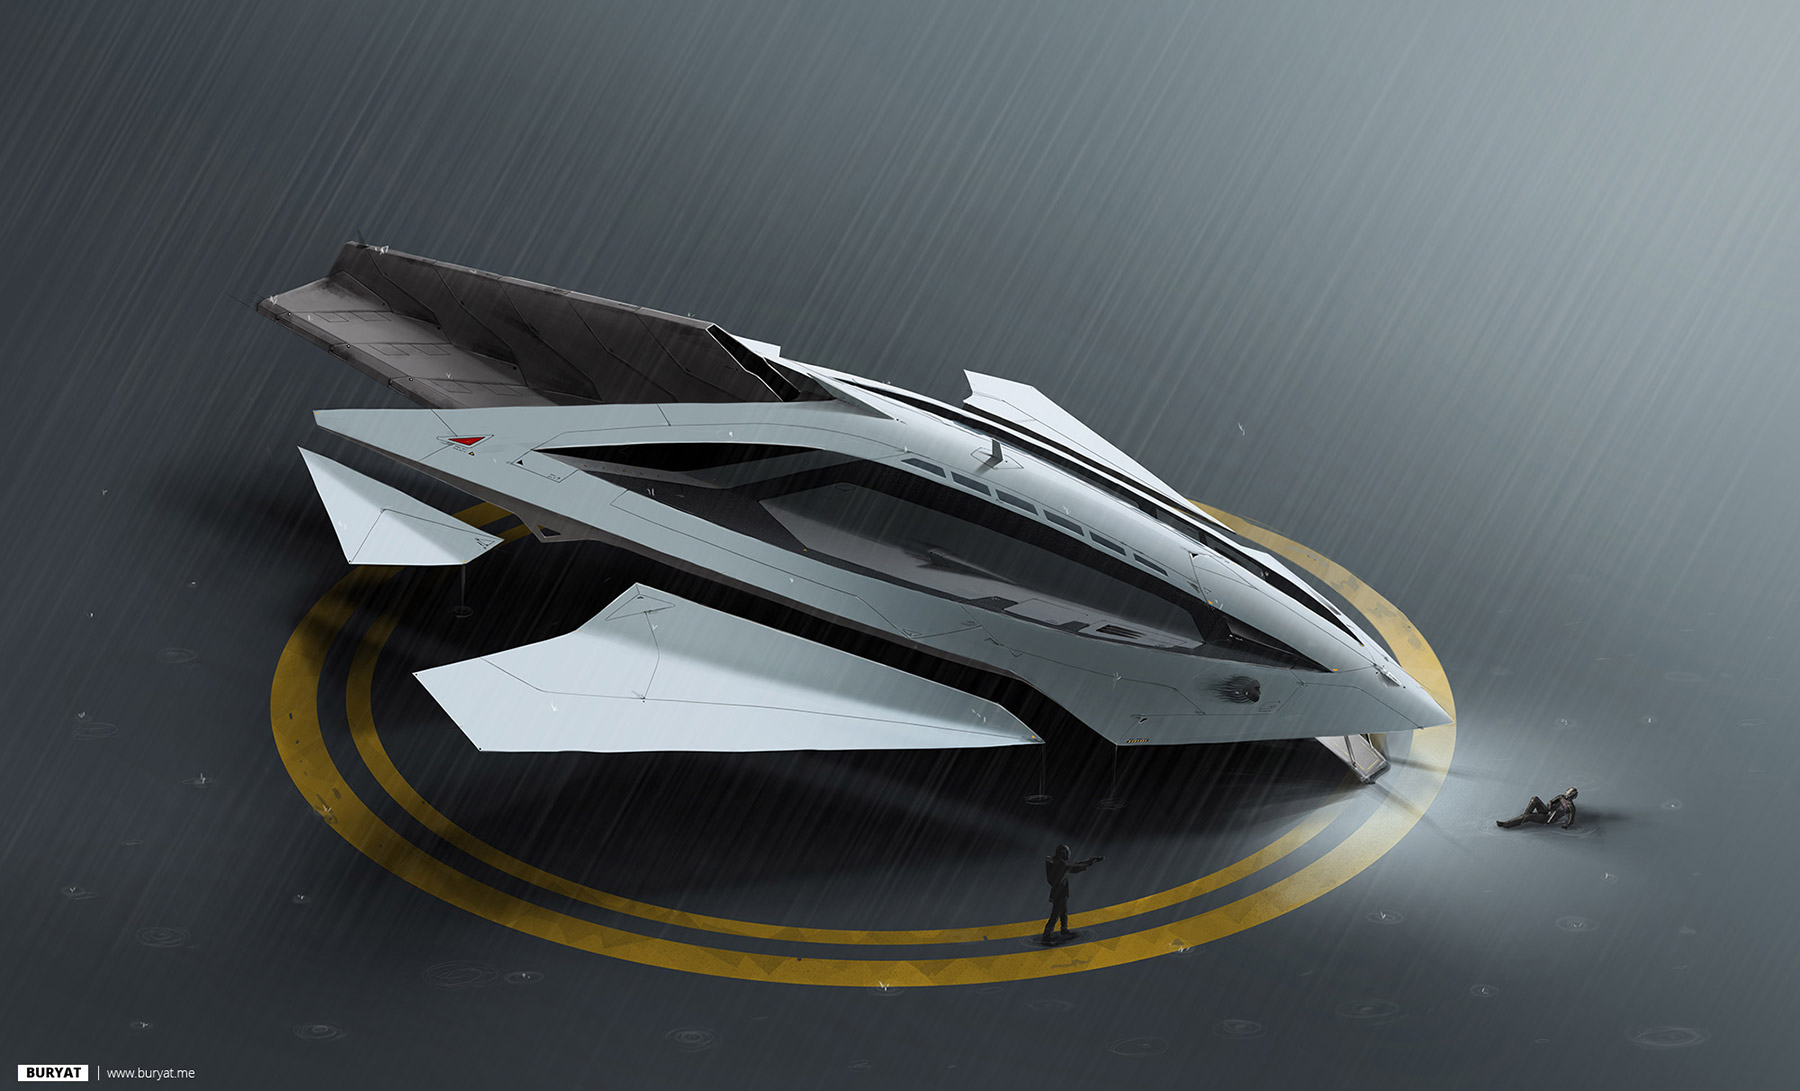 Concept Ships Spaceship Art By Evgeny Onutchin